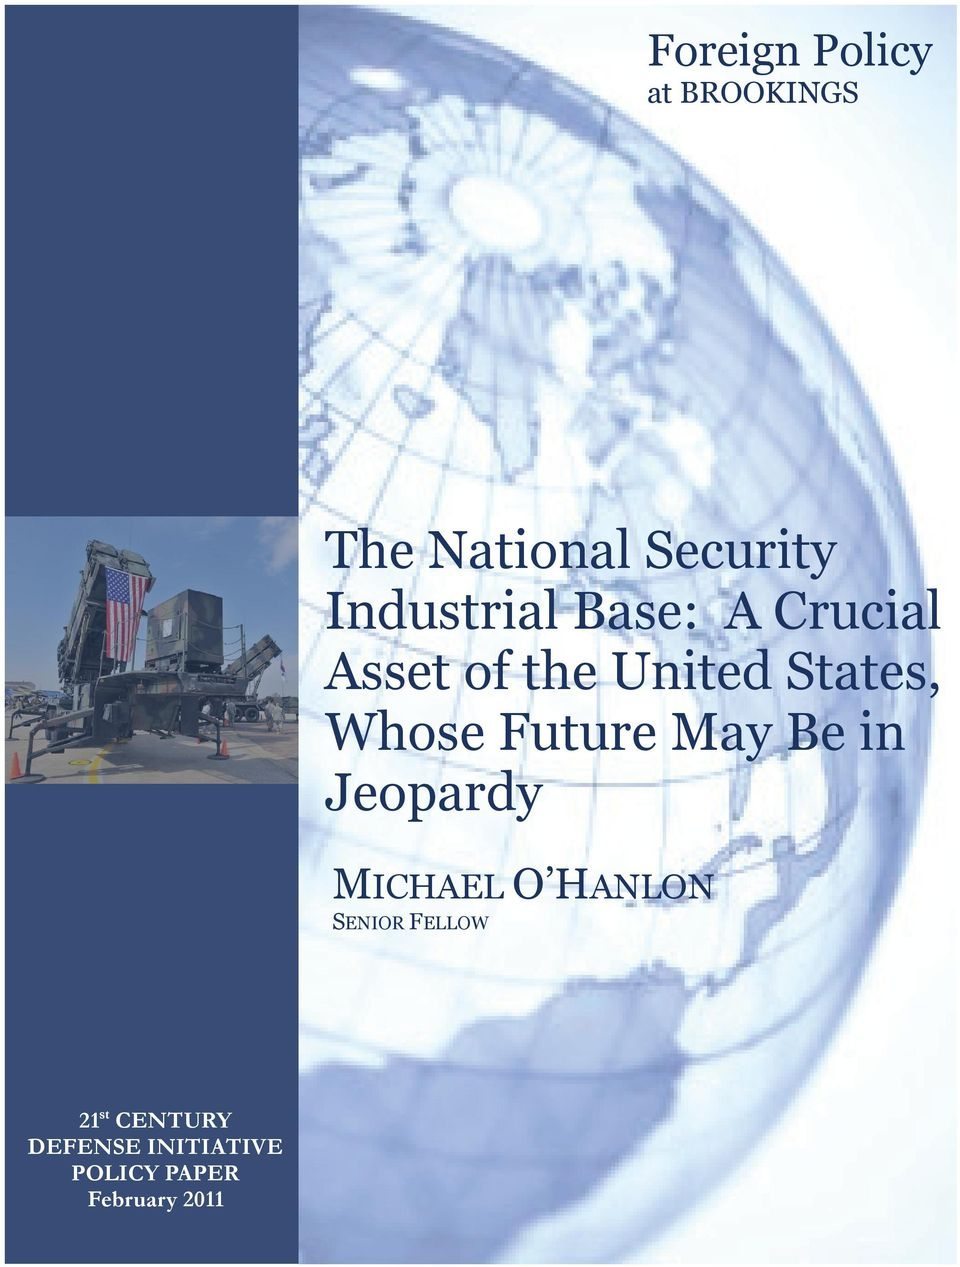 Whose Future May Be in Jeopardy MICHAEL O HANLON SENIOR